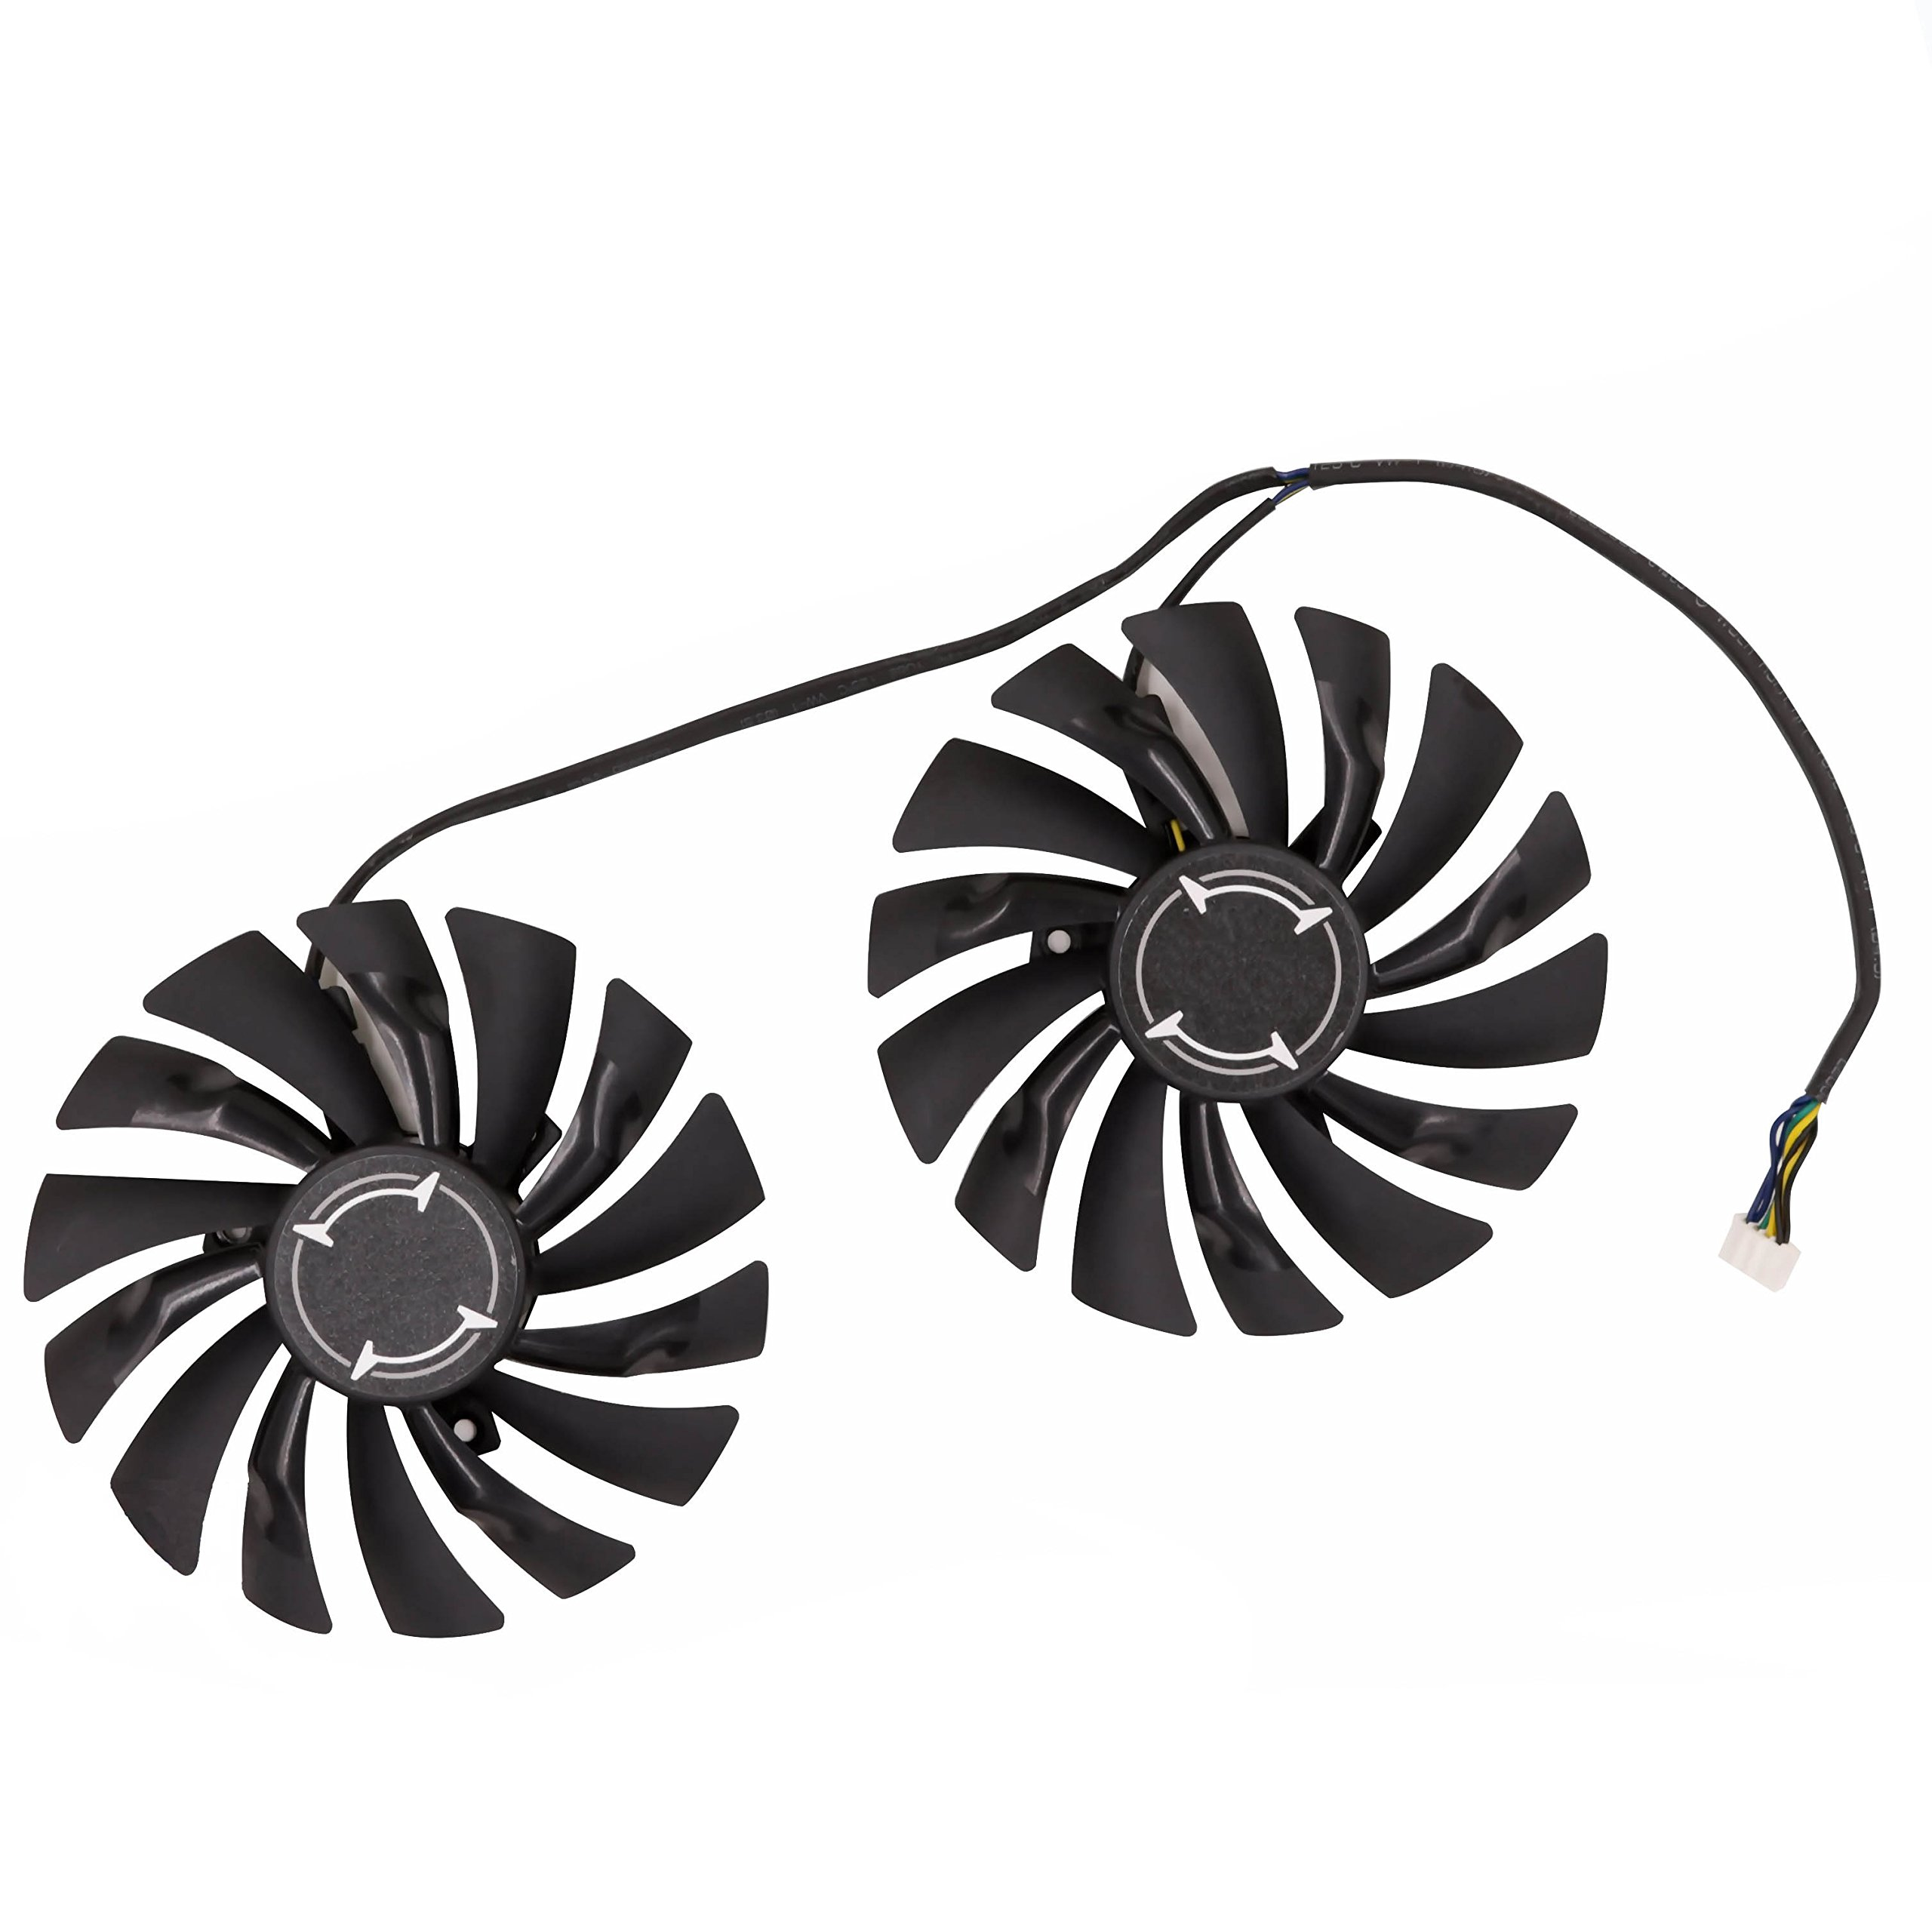 Replacement Graphics Card Cooling Fan for MSI GTX 1080 GTX 1070 GTX 1060 RX 580 RX570 Armor Video Card Cooler Fan DC 12V 0.4A 4Pin